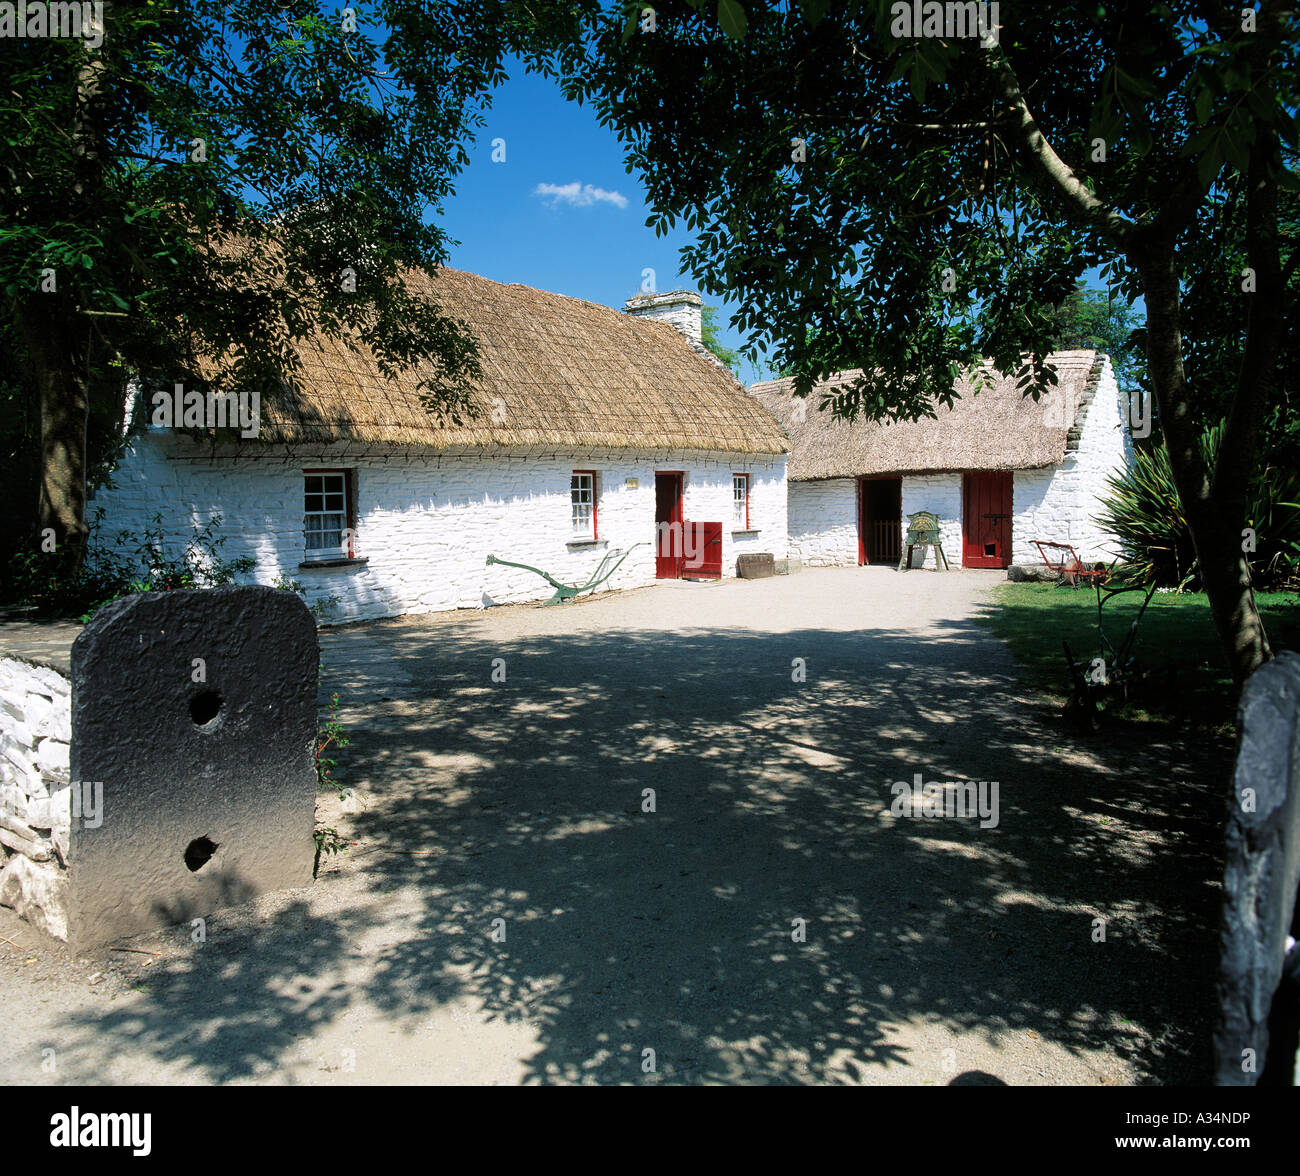 bunratty folk park co clare ireland, old thatched house in rural setting - Stock Image